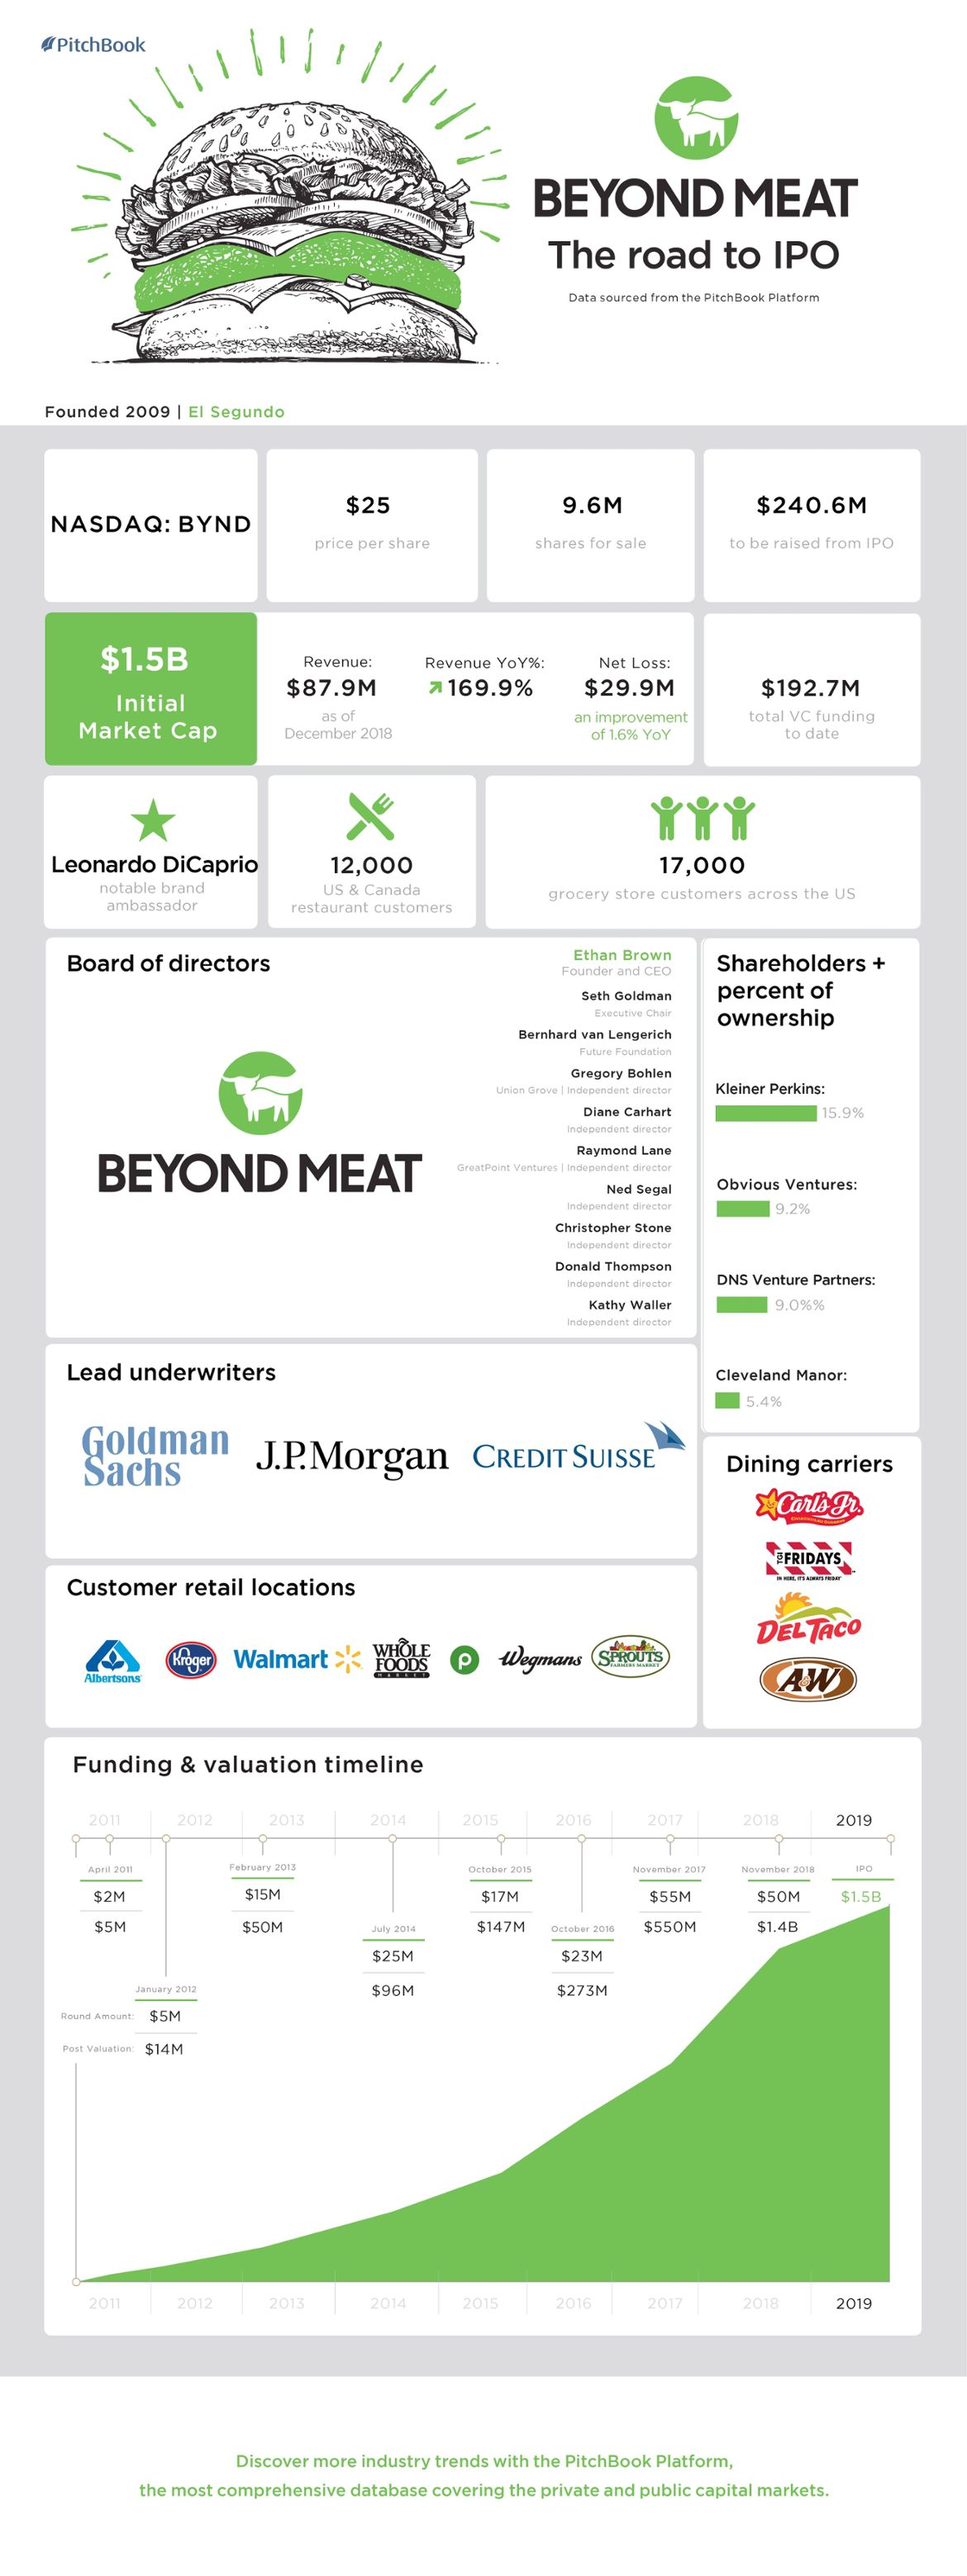 Big, juicy and vegan: The story behind Beyond Meat's explosive IPO [datagraphic]